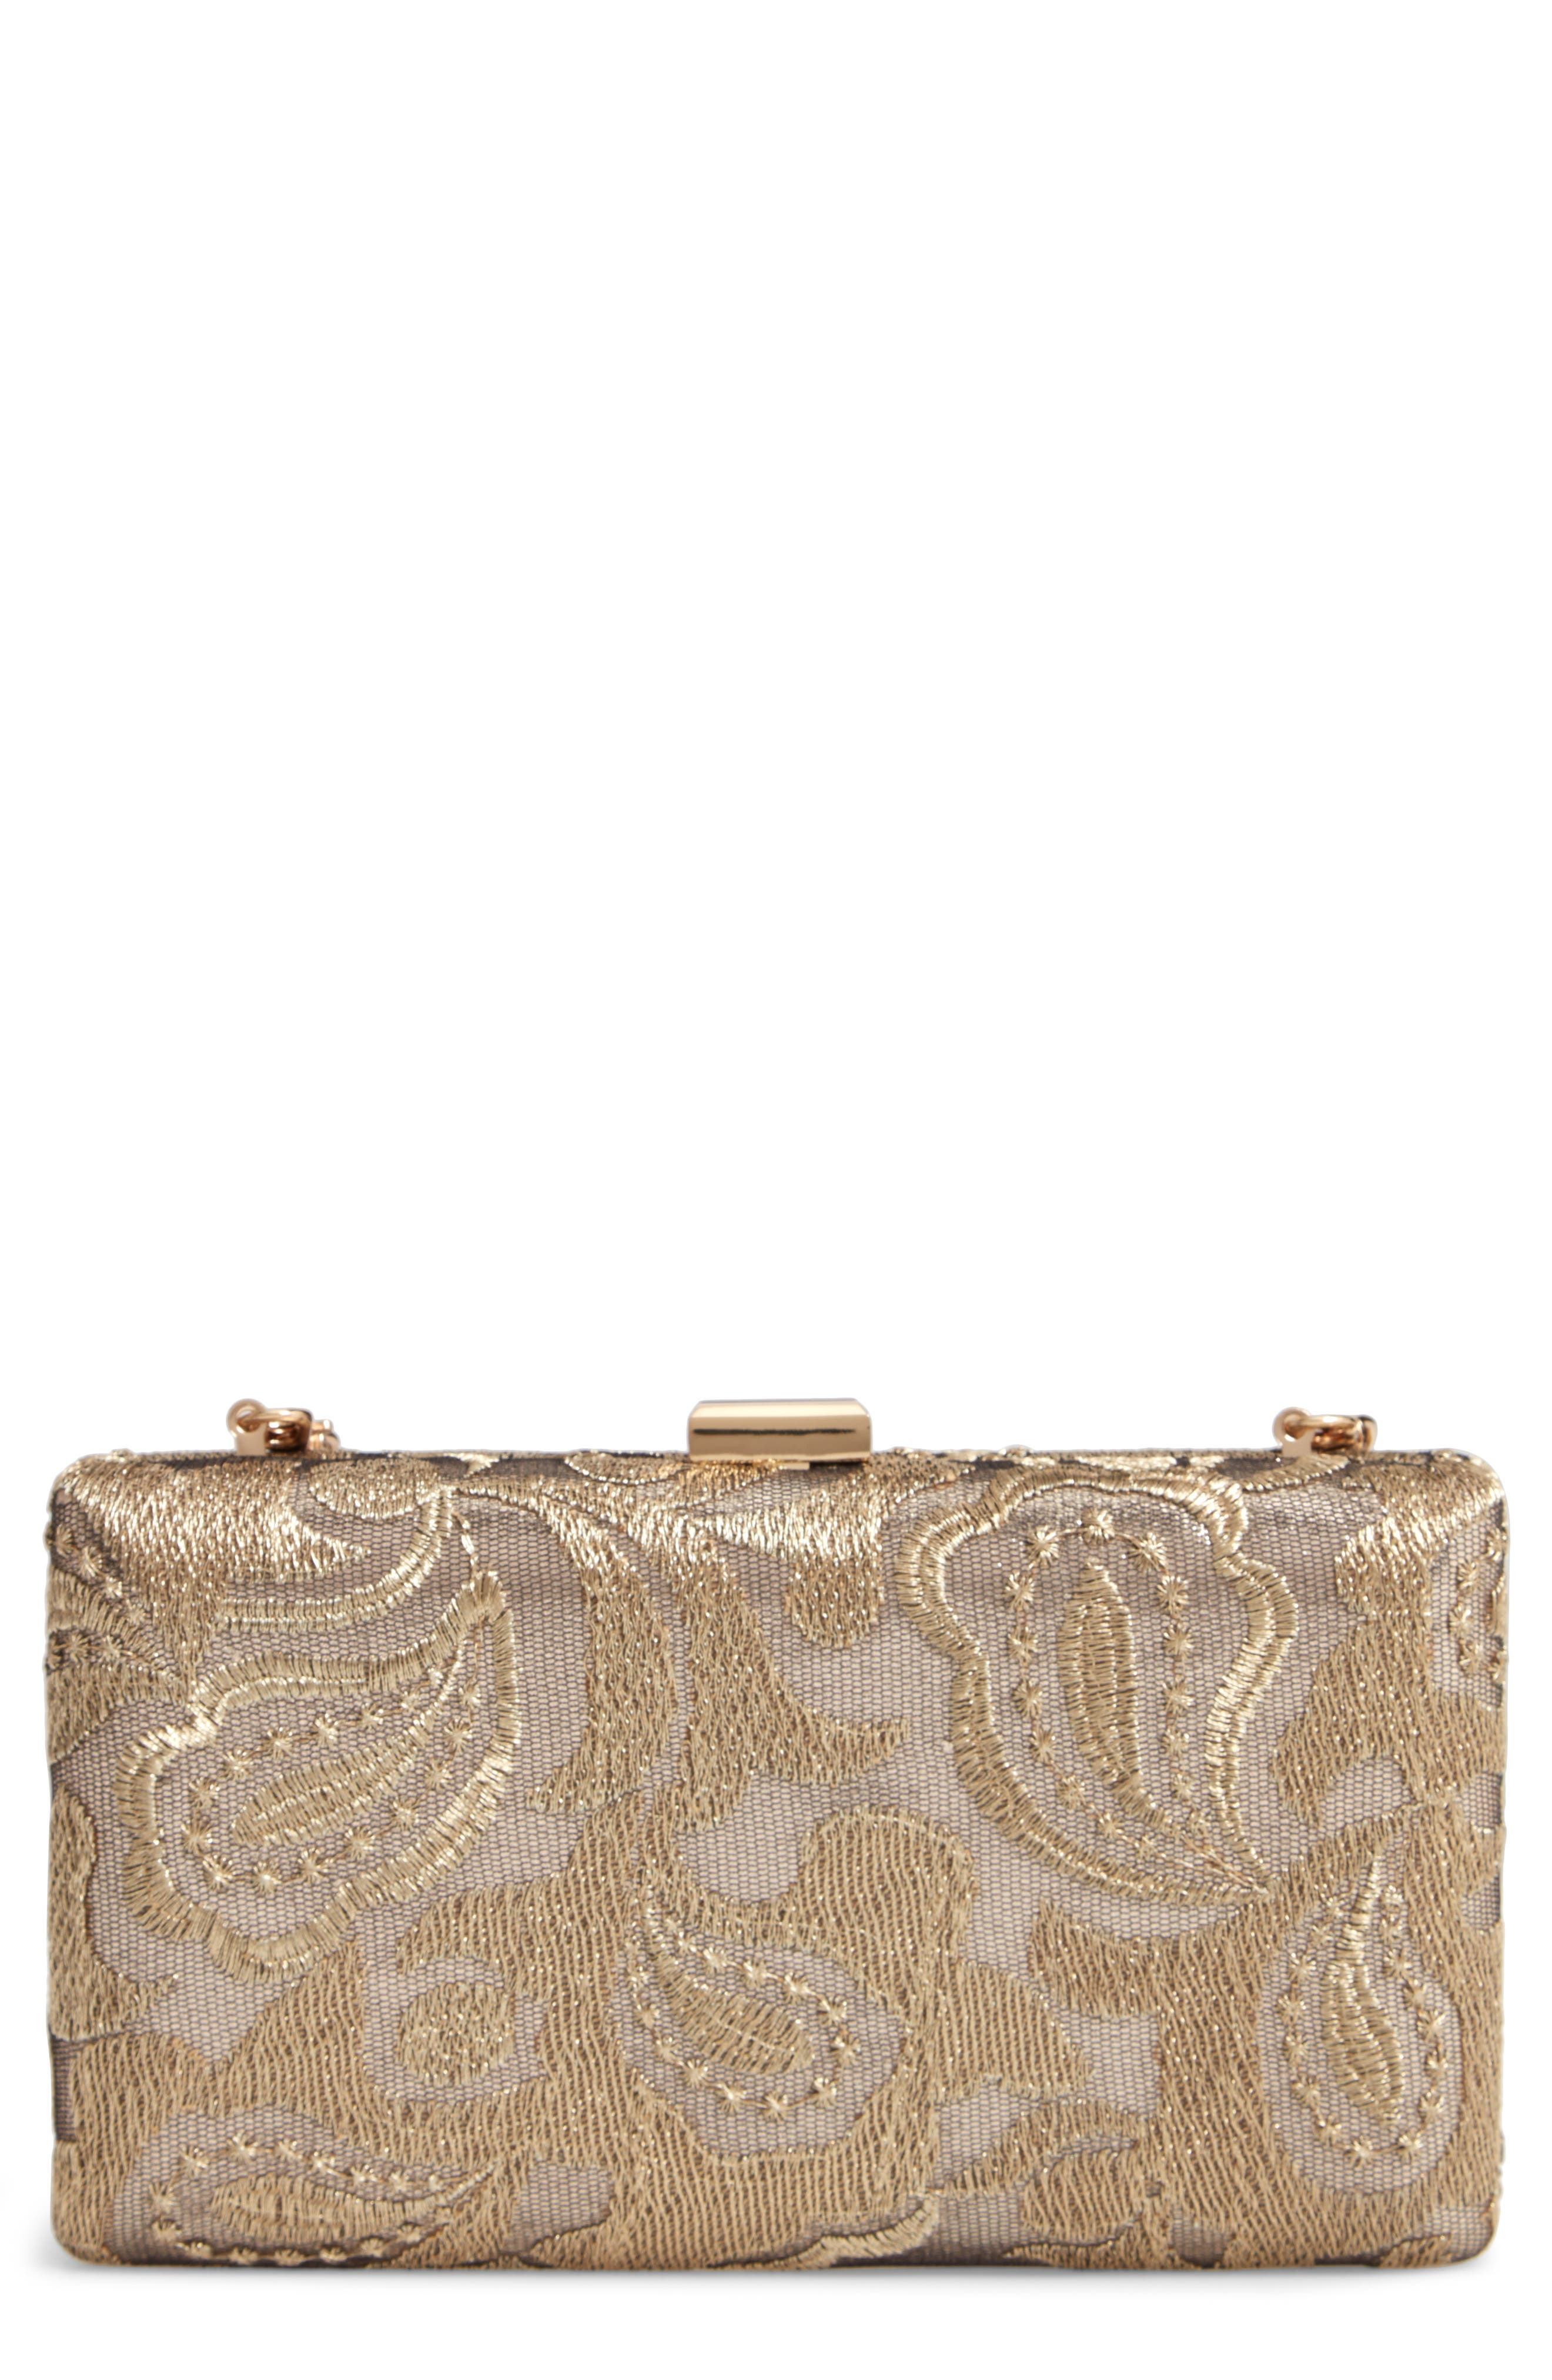 NORDSTROM, Metallic Lace Pattern Box Minaudière, Main thumbnail 1, color, 710